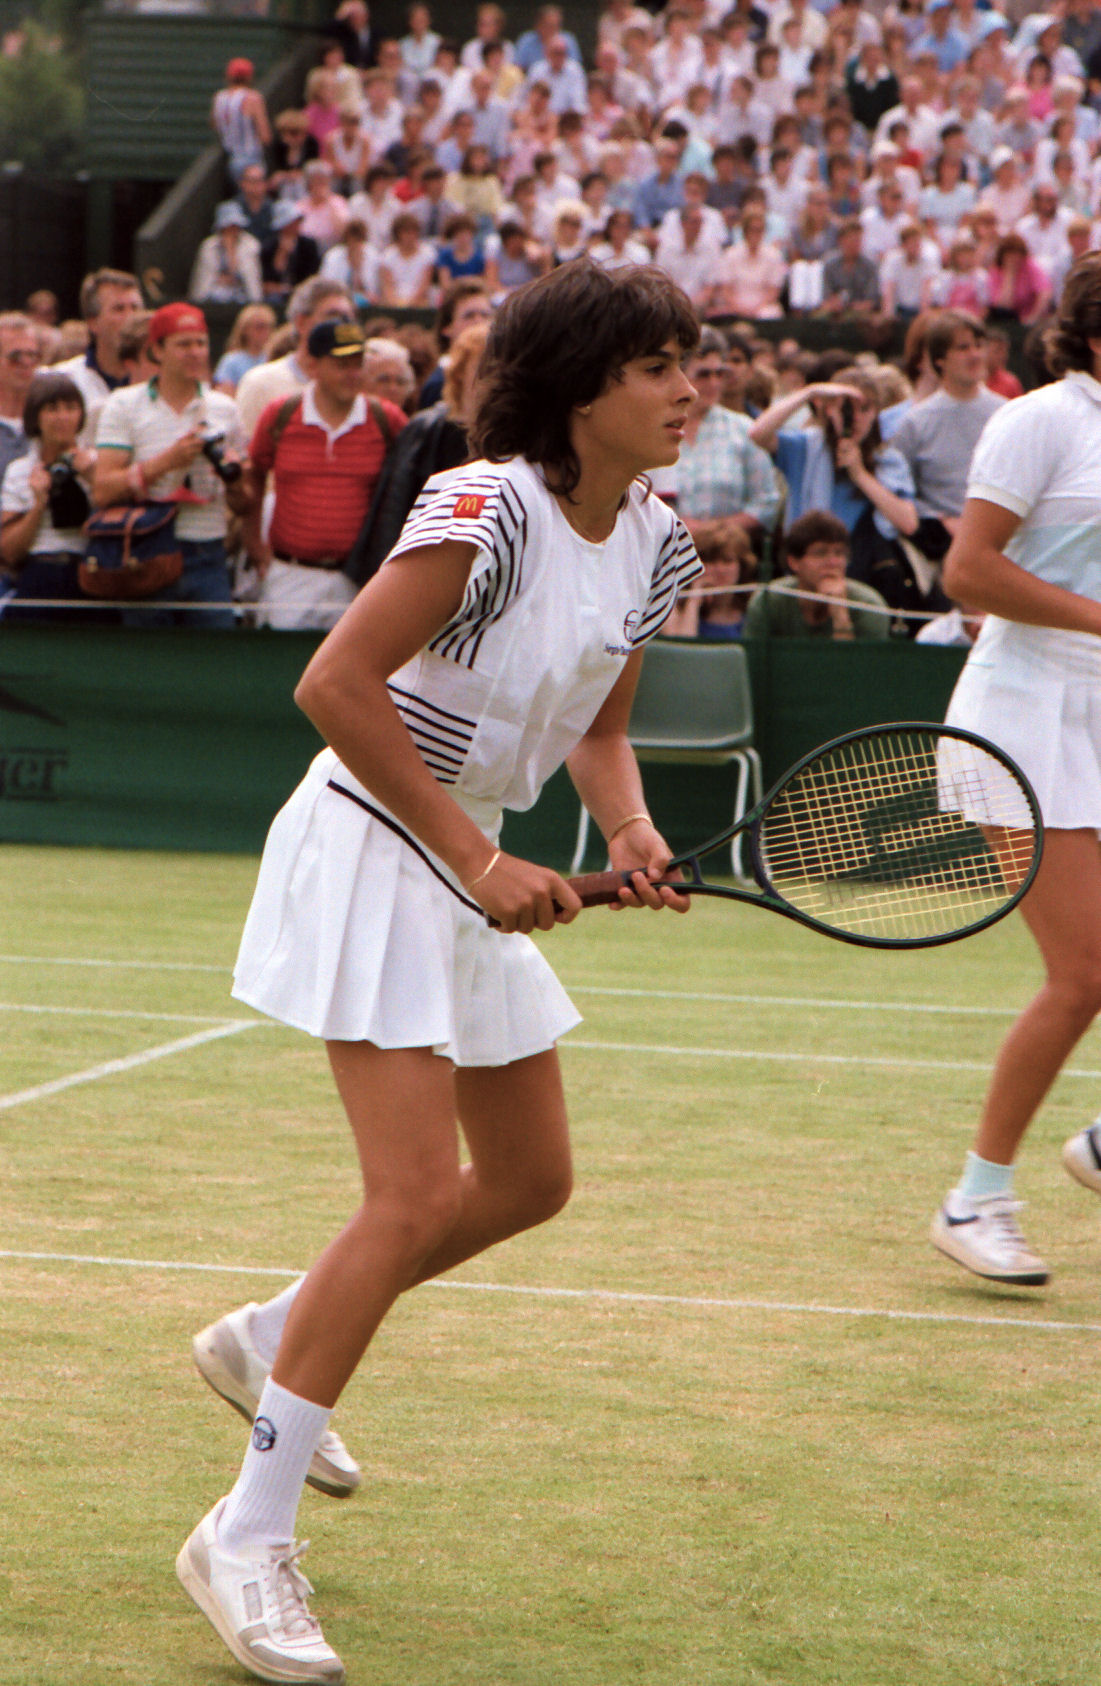 gabriela sabatini sweat - photo #28